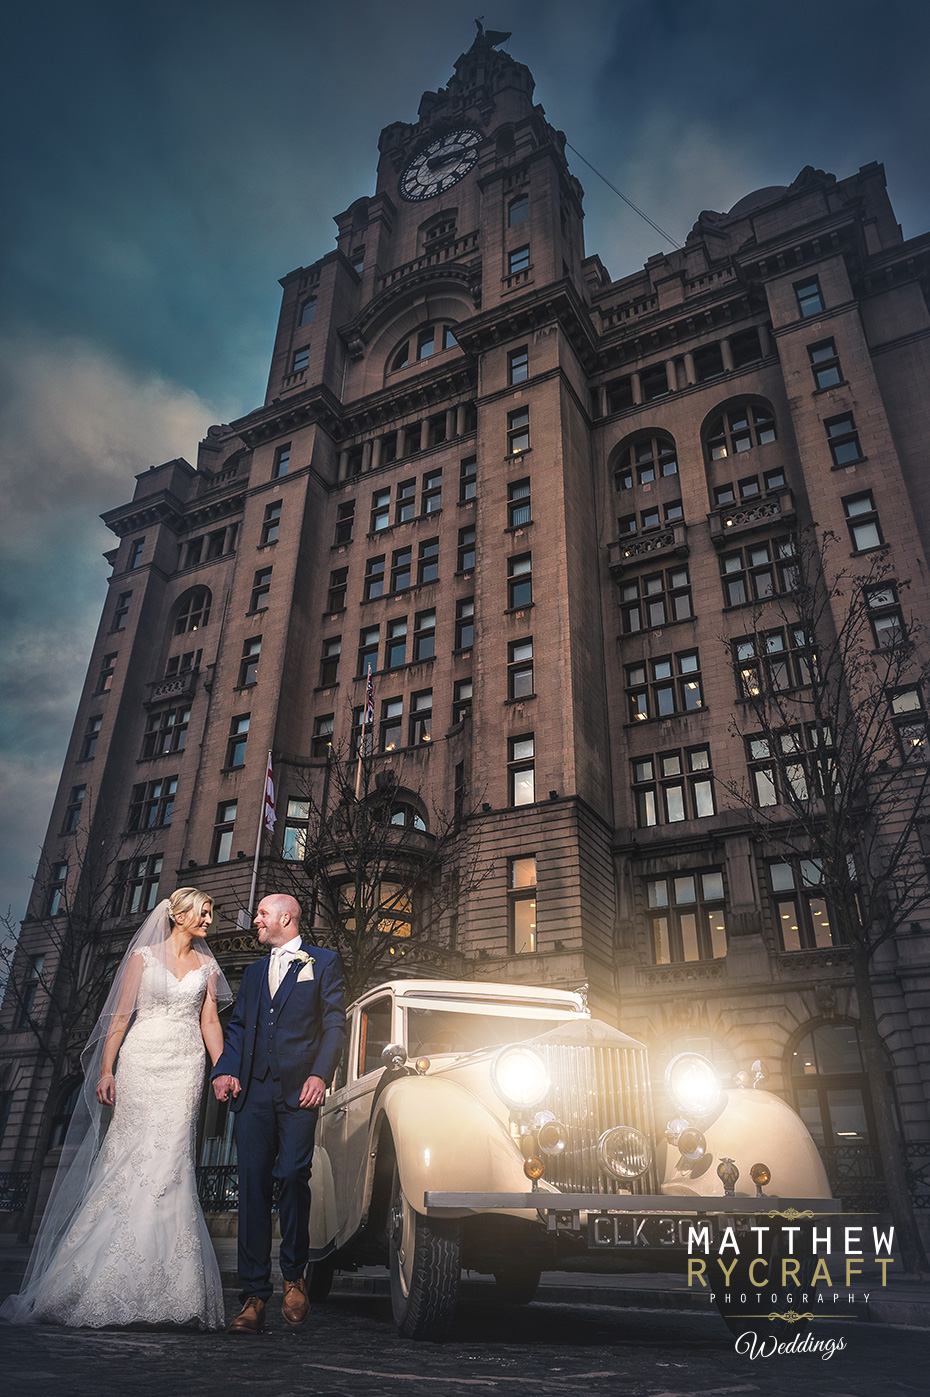 Weddings In Liverpool